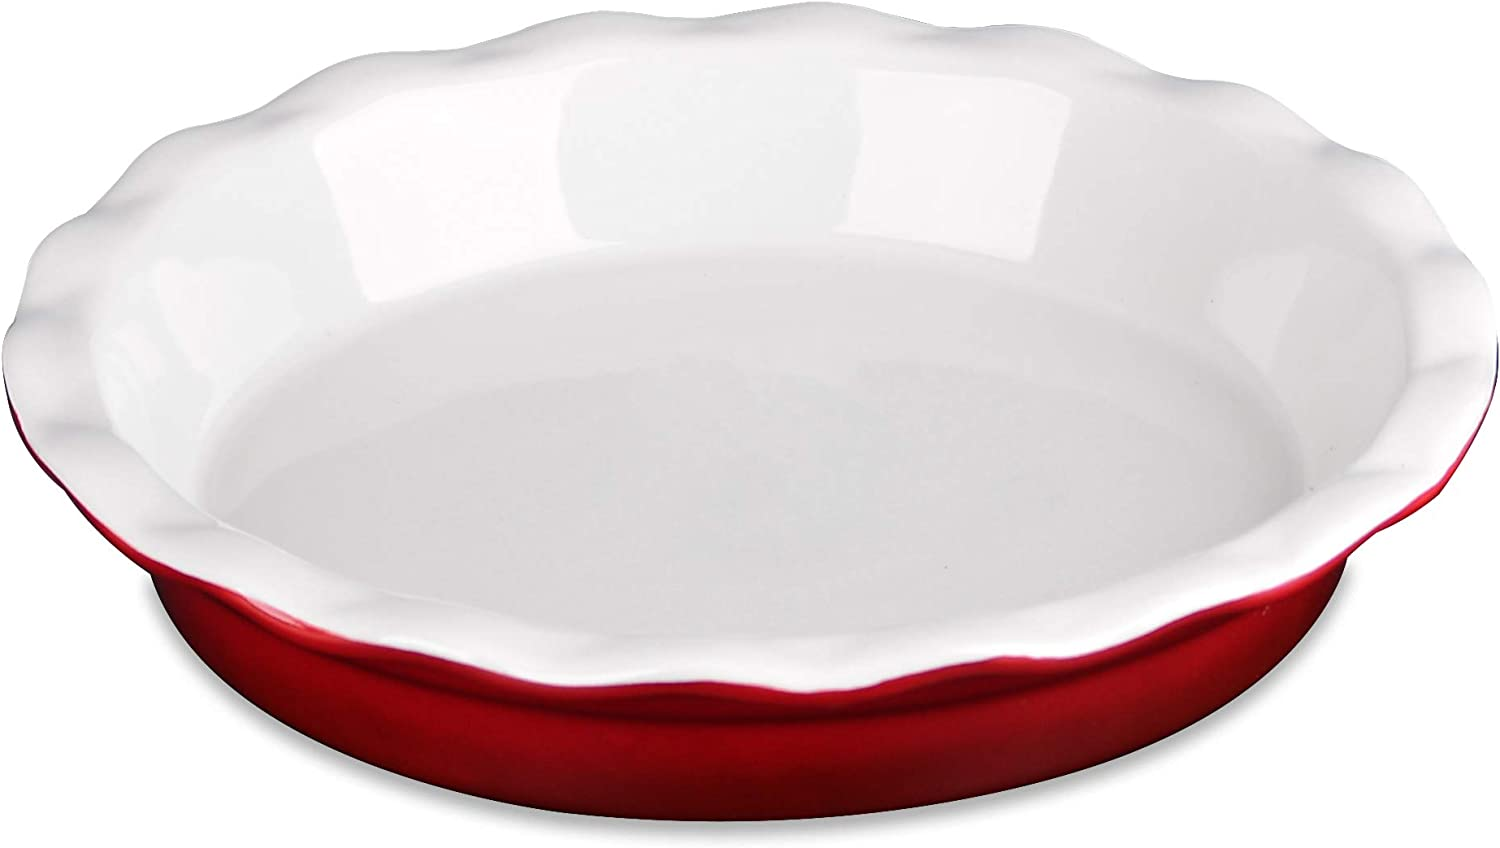 LOVECASA Ceramic Pie Pan , 11 Inches Pie Dish for Baking, Pie Plate Pie Dishes for Dessert Kitchen , Deep Round Pie Baking Dish with Ruffled Edge, Red, 11 x 11 x 2.0 inch